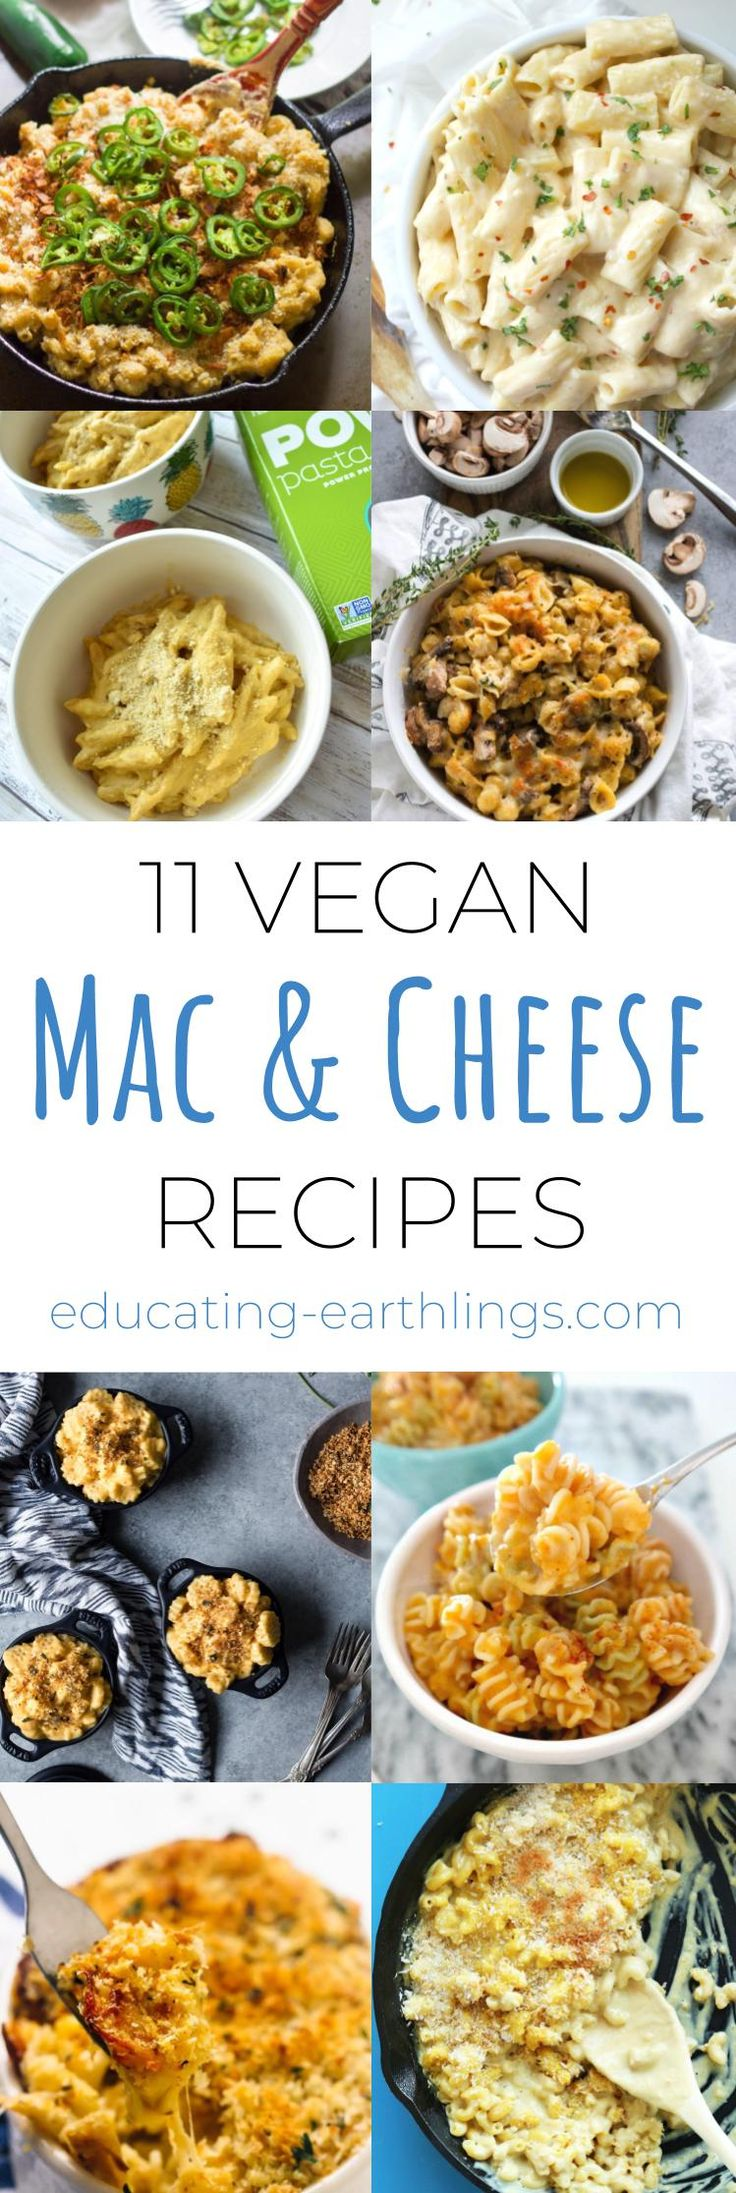 Vegan mac & Cheese recipes. Vegan cheese. Plant based Mac & Cheese. Healthy Mac & Cheese. Homemade Mac & Cheese. Dairy free Mac & cheese recipes. Vegan protein. Plant based protein. Vegan Mac & Cheese sauce. Vegan starter guide. Vegan meal prep. Plant based meal prep.